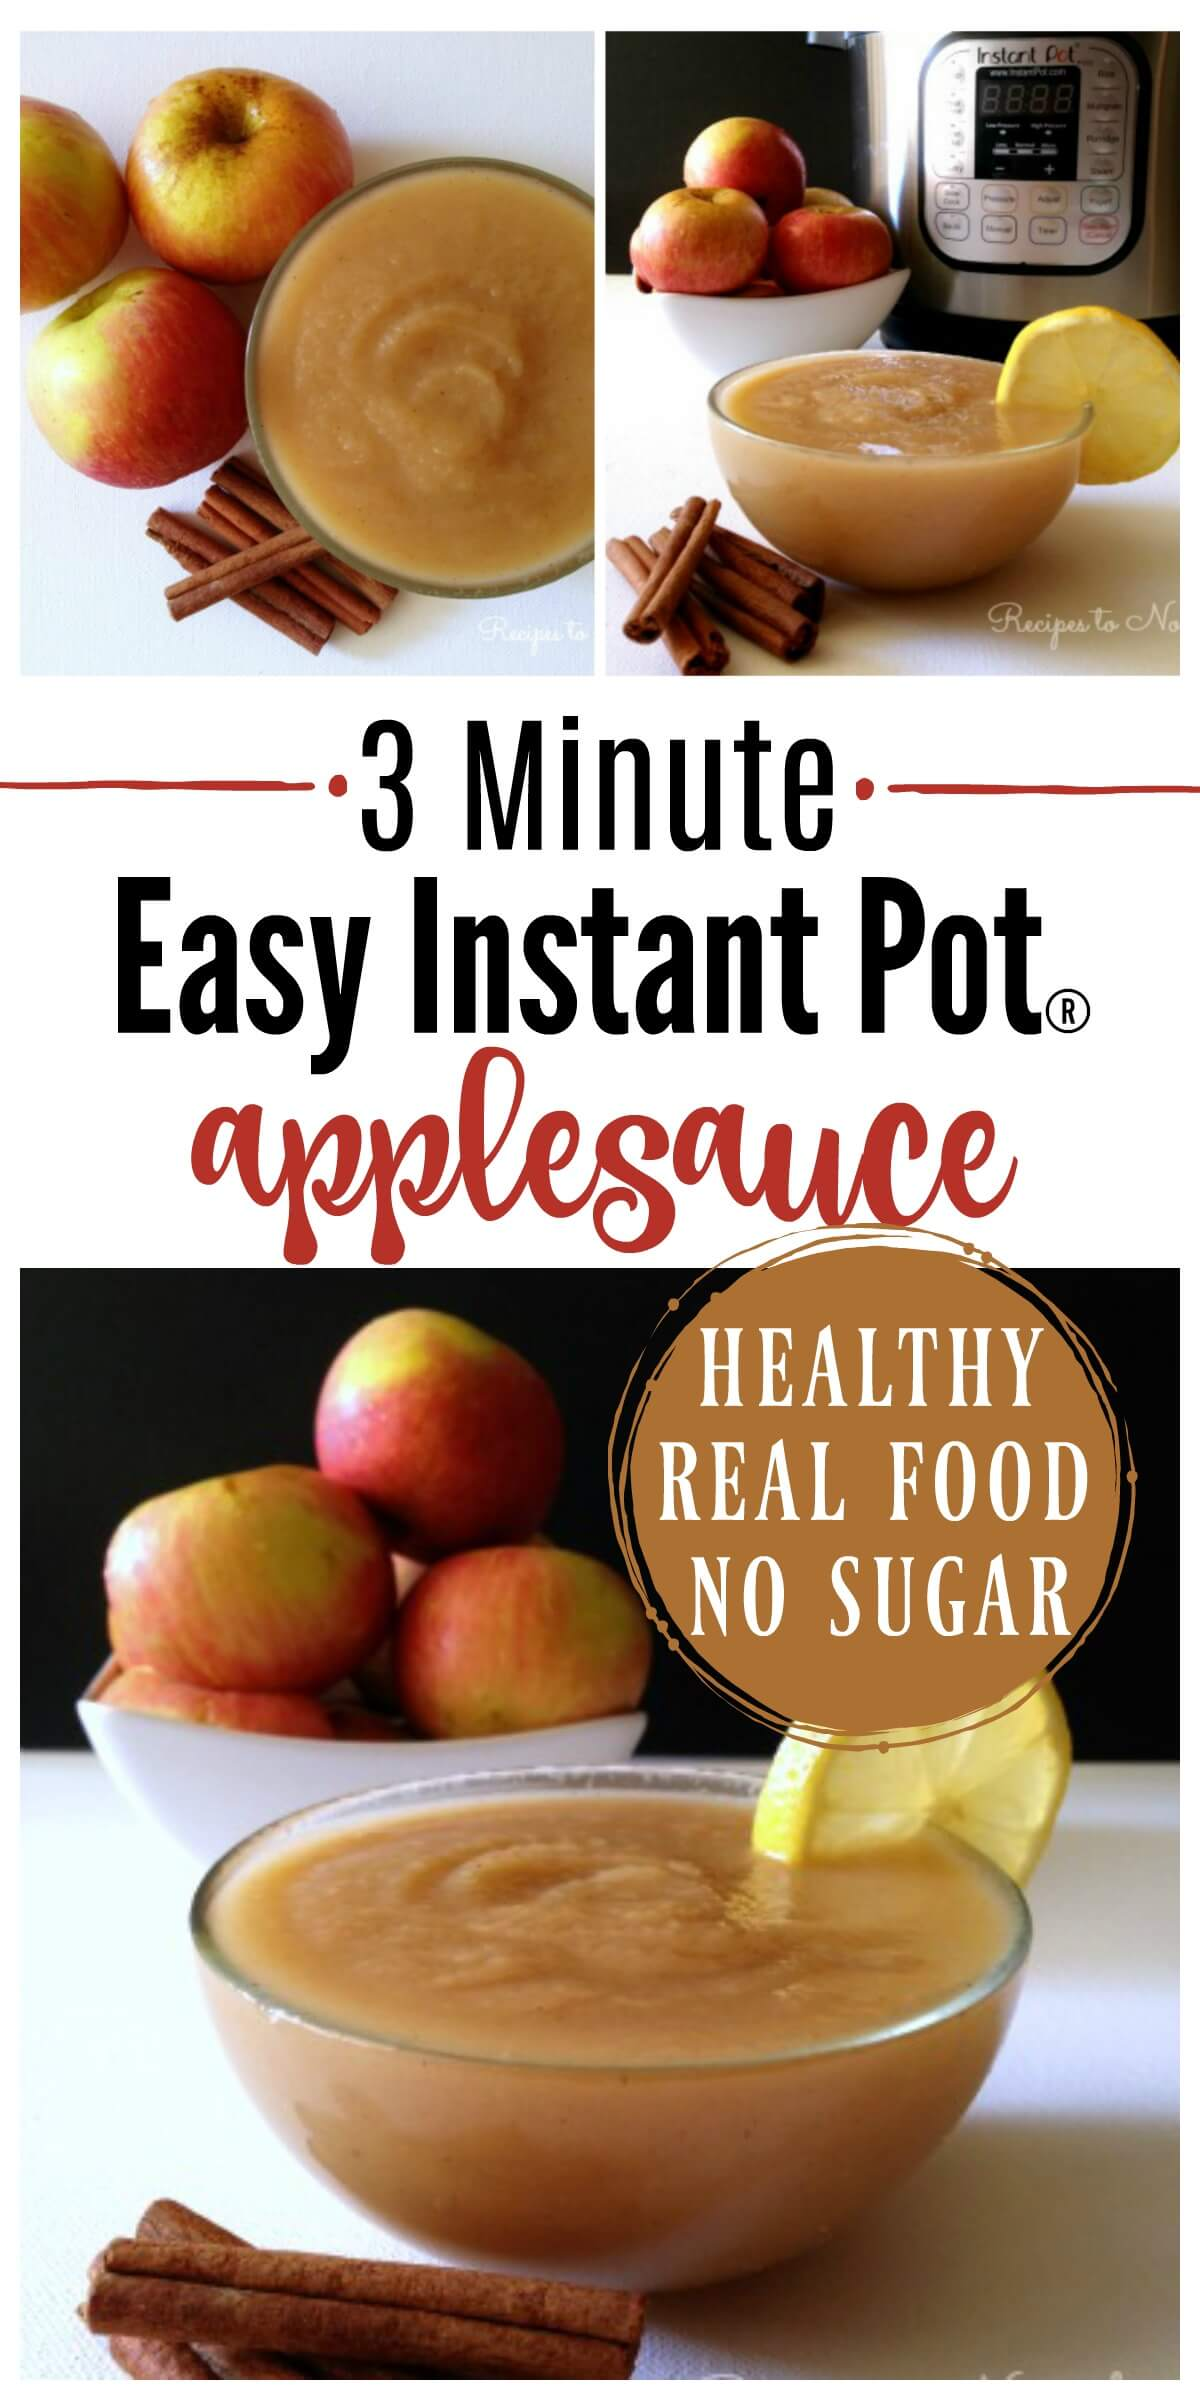 3 Minute Instant Pot Applesauce! If you love applesauce, you've got to try this method. It's absolutely delicious and comes out perfect every time. | Recipes to Nourish | Easy Instant Pot recipe | Real food recipes | Sugar-free applesauce | Healthy Instant pot recipes | Healthy snacks | Instant Pot snacks | Gluten-free recipe | Paleo snacks || #instantpot #healthysnacks #instantpotrecipes #applesauce #realfood #healthysnacks #easyrecipe